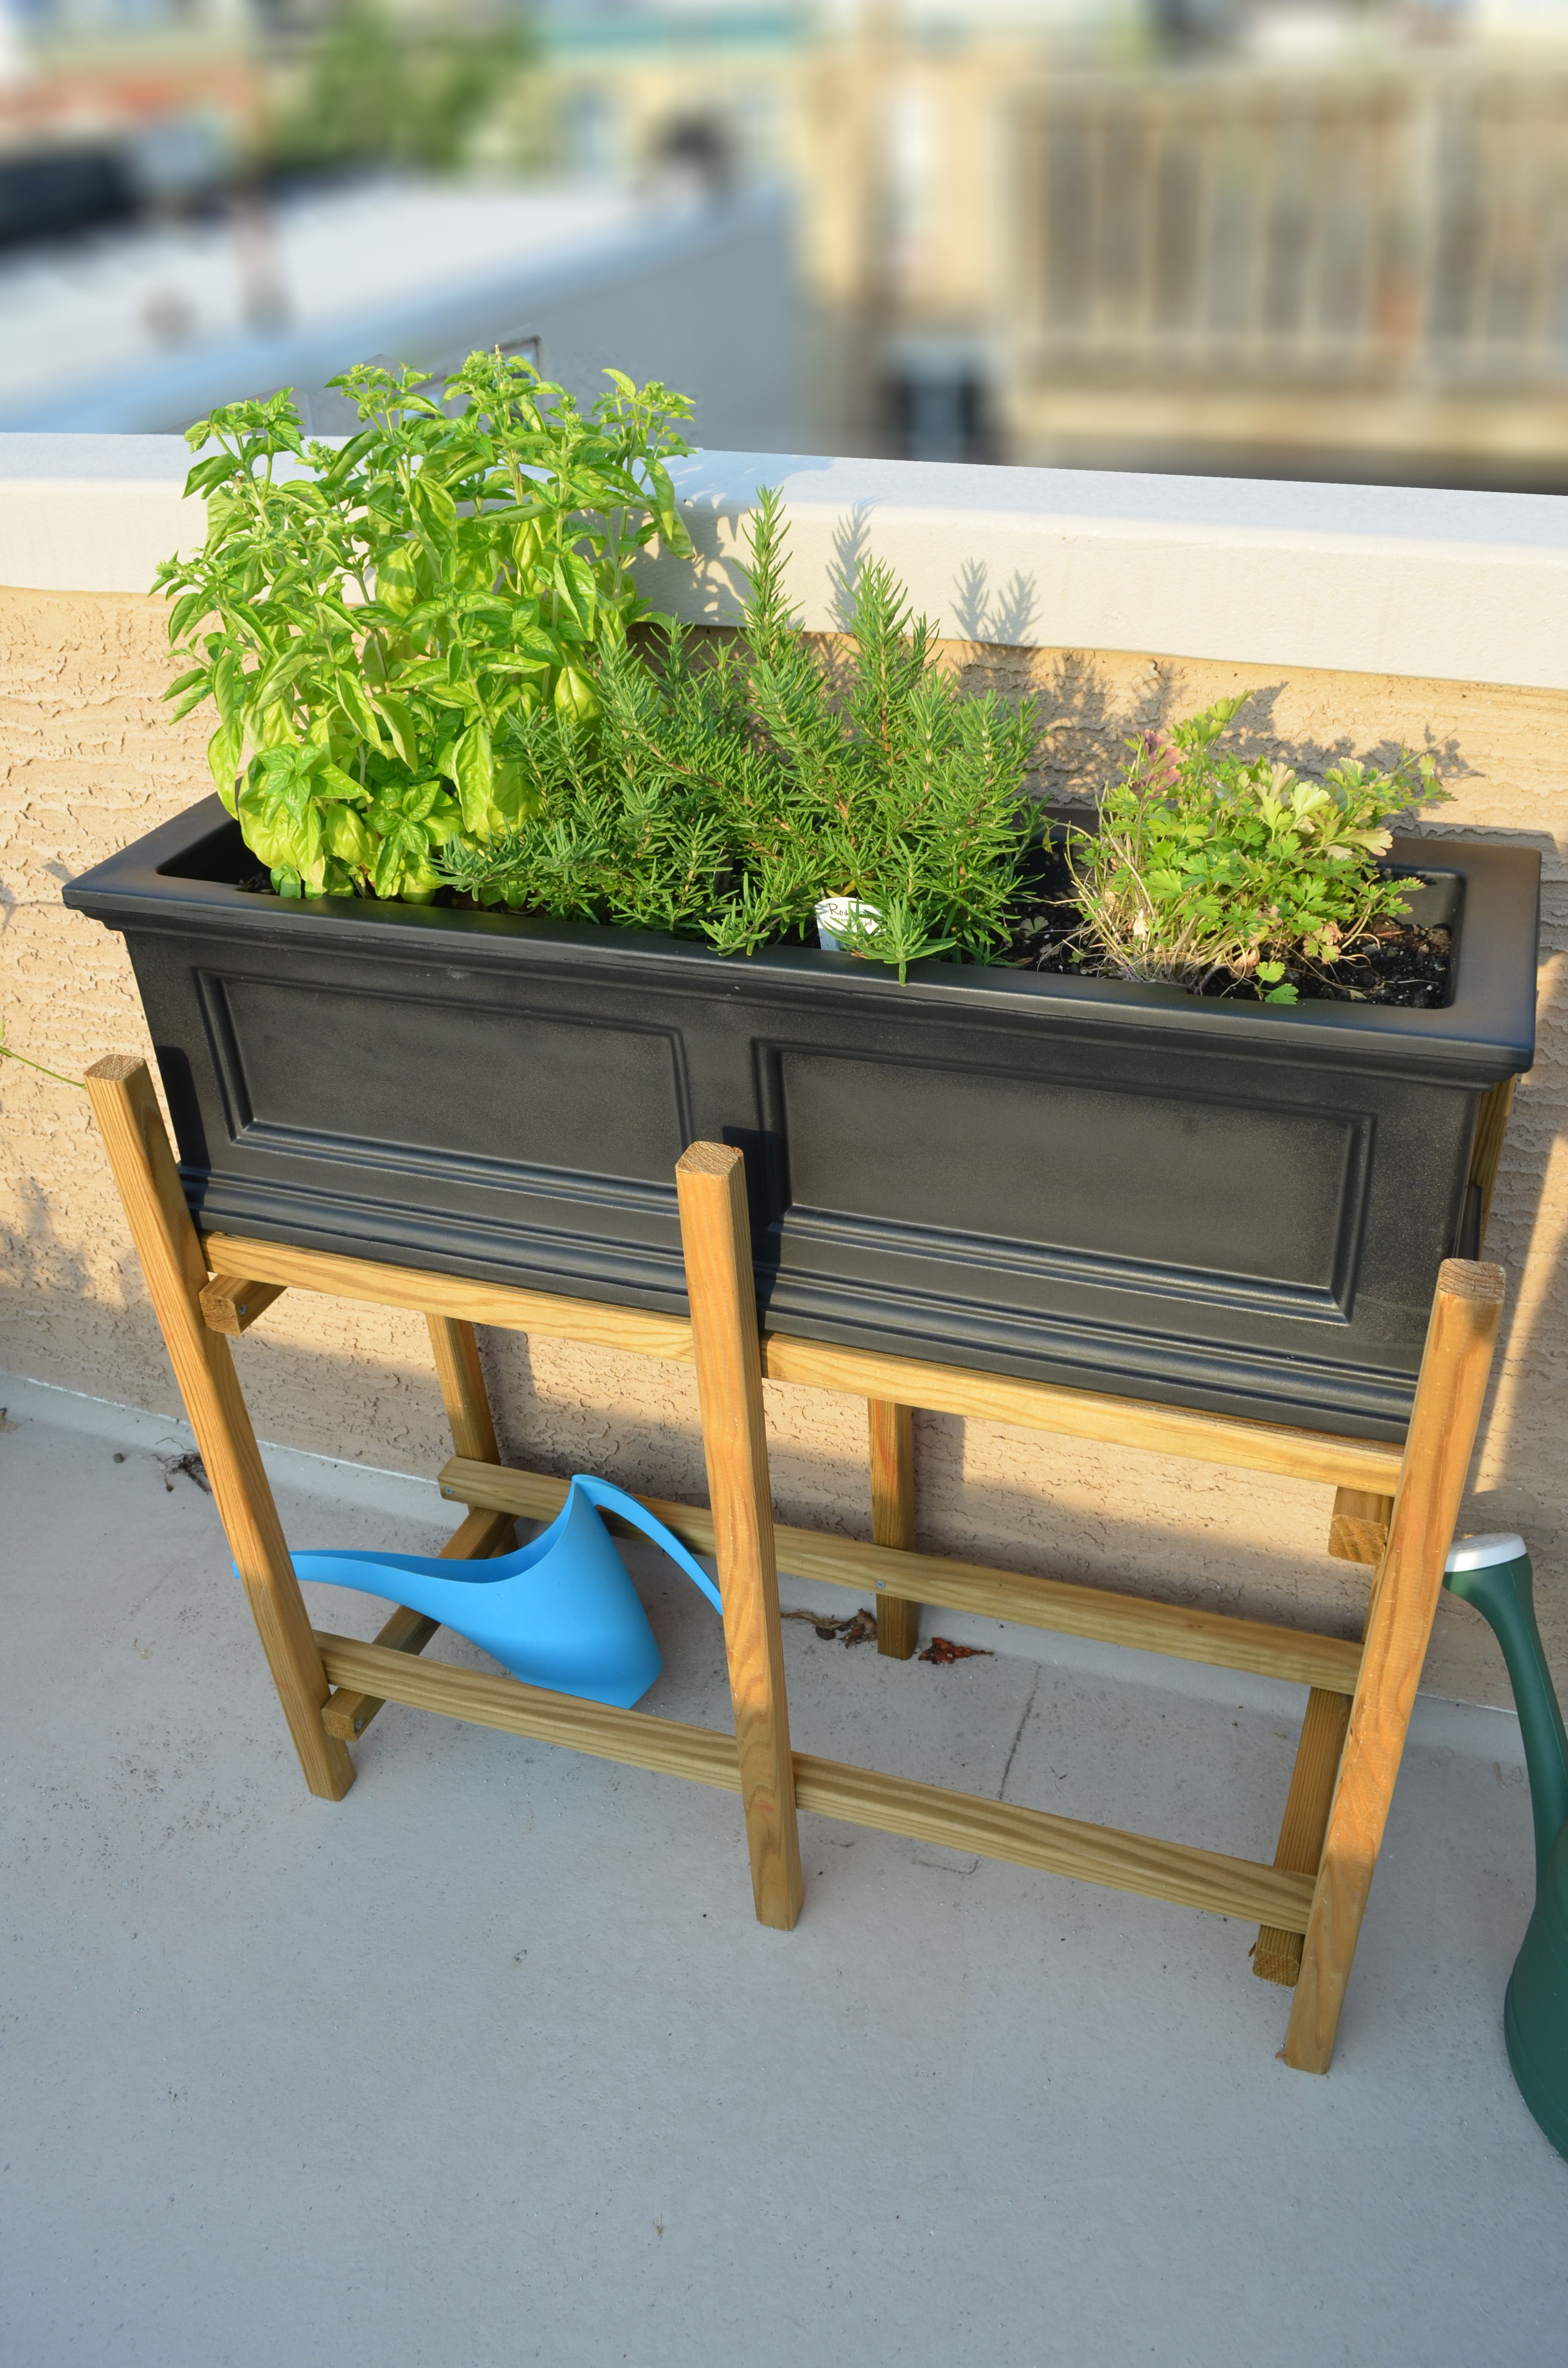 Herb Garden In A Homemade Planter Box Stand With Images